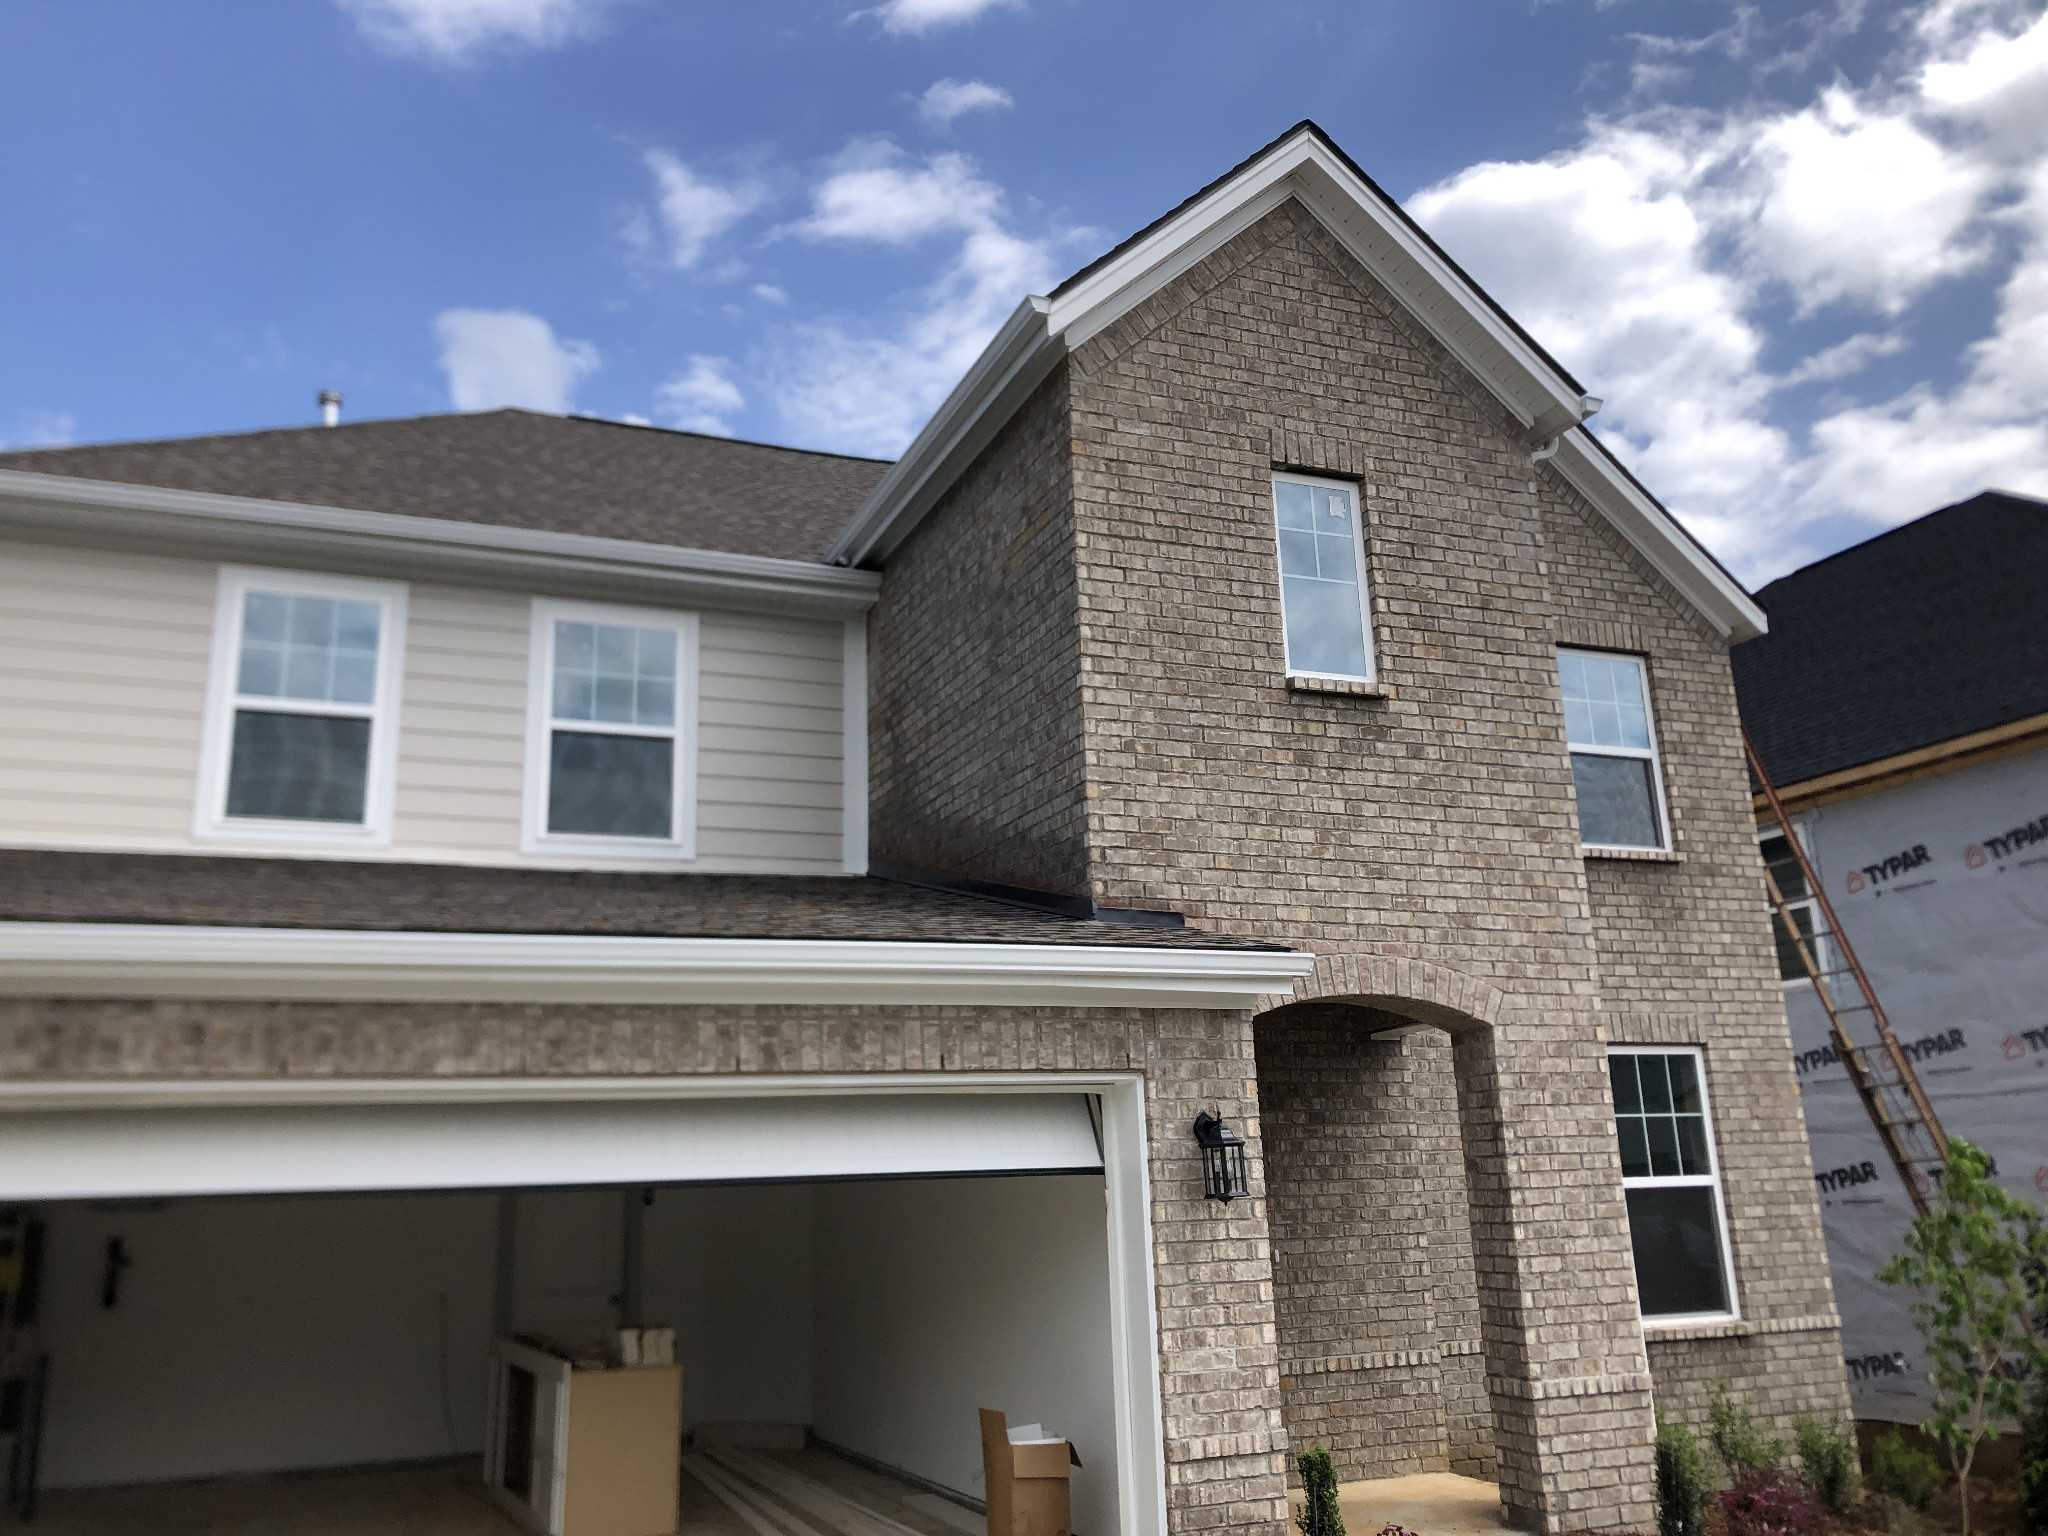 $391,450 - 4Br/4Ba -  for Sale in Palmers Crossing, White House